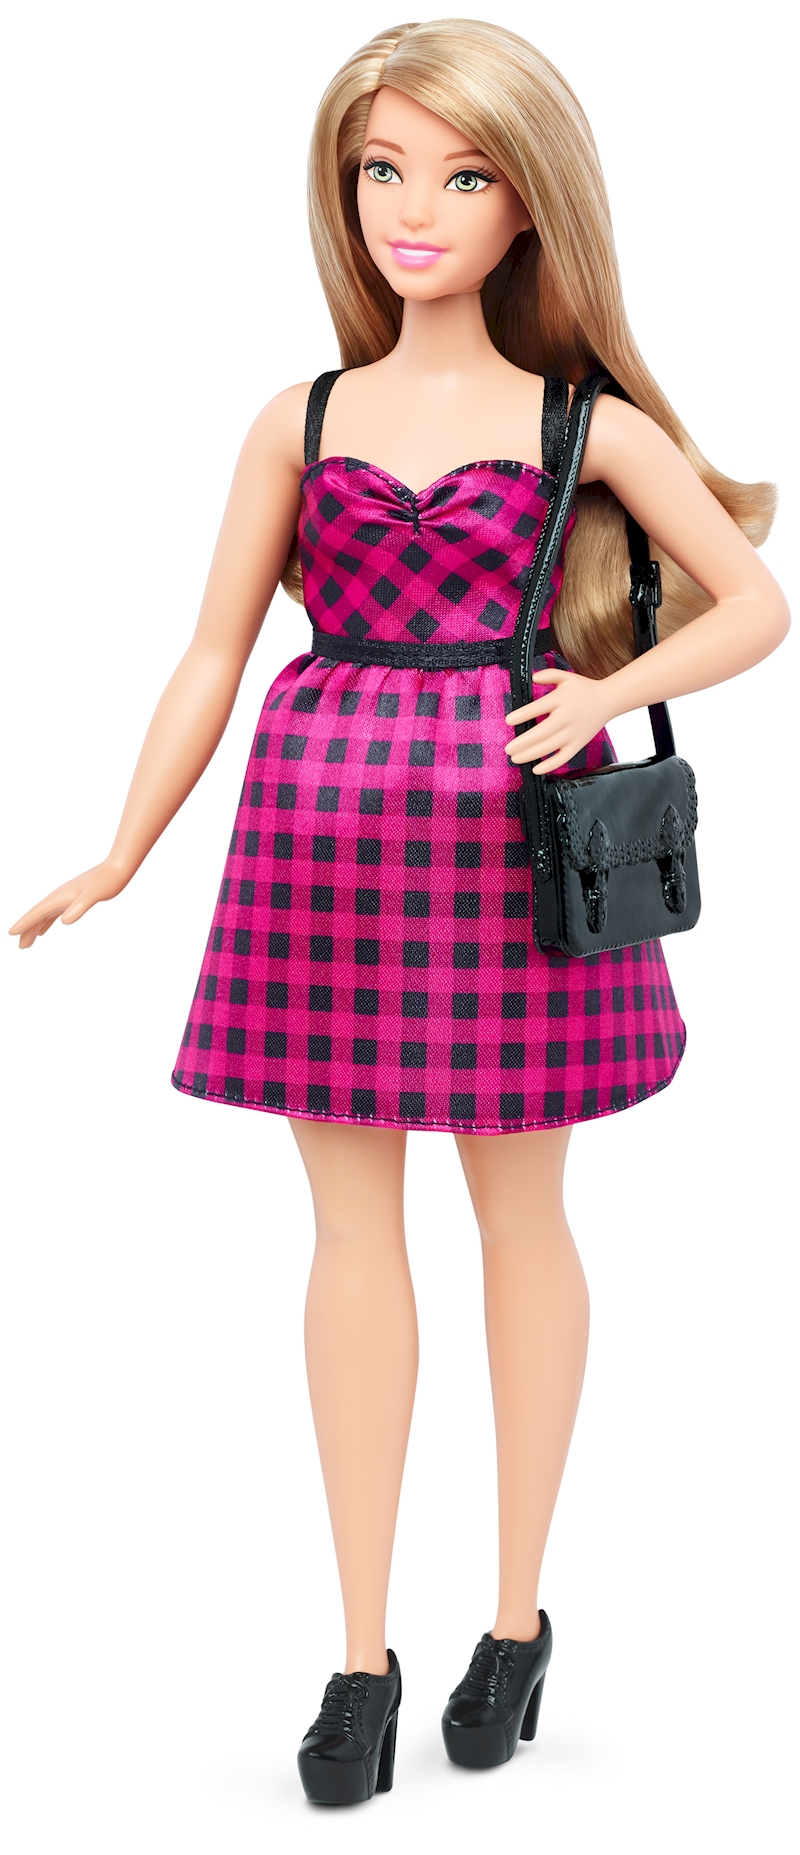 Barbie Fashionistas 37 Everyday Chic Doll Fashions Curvy